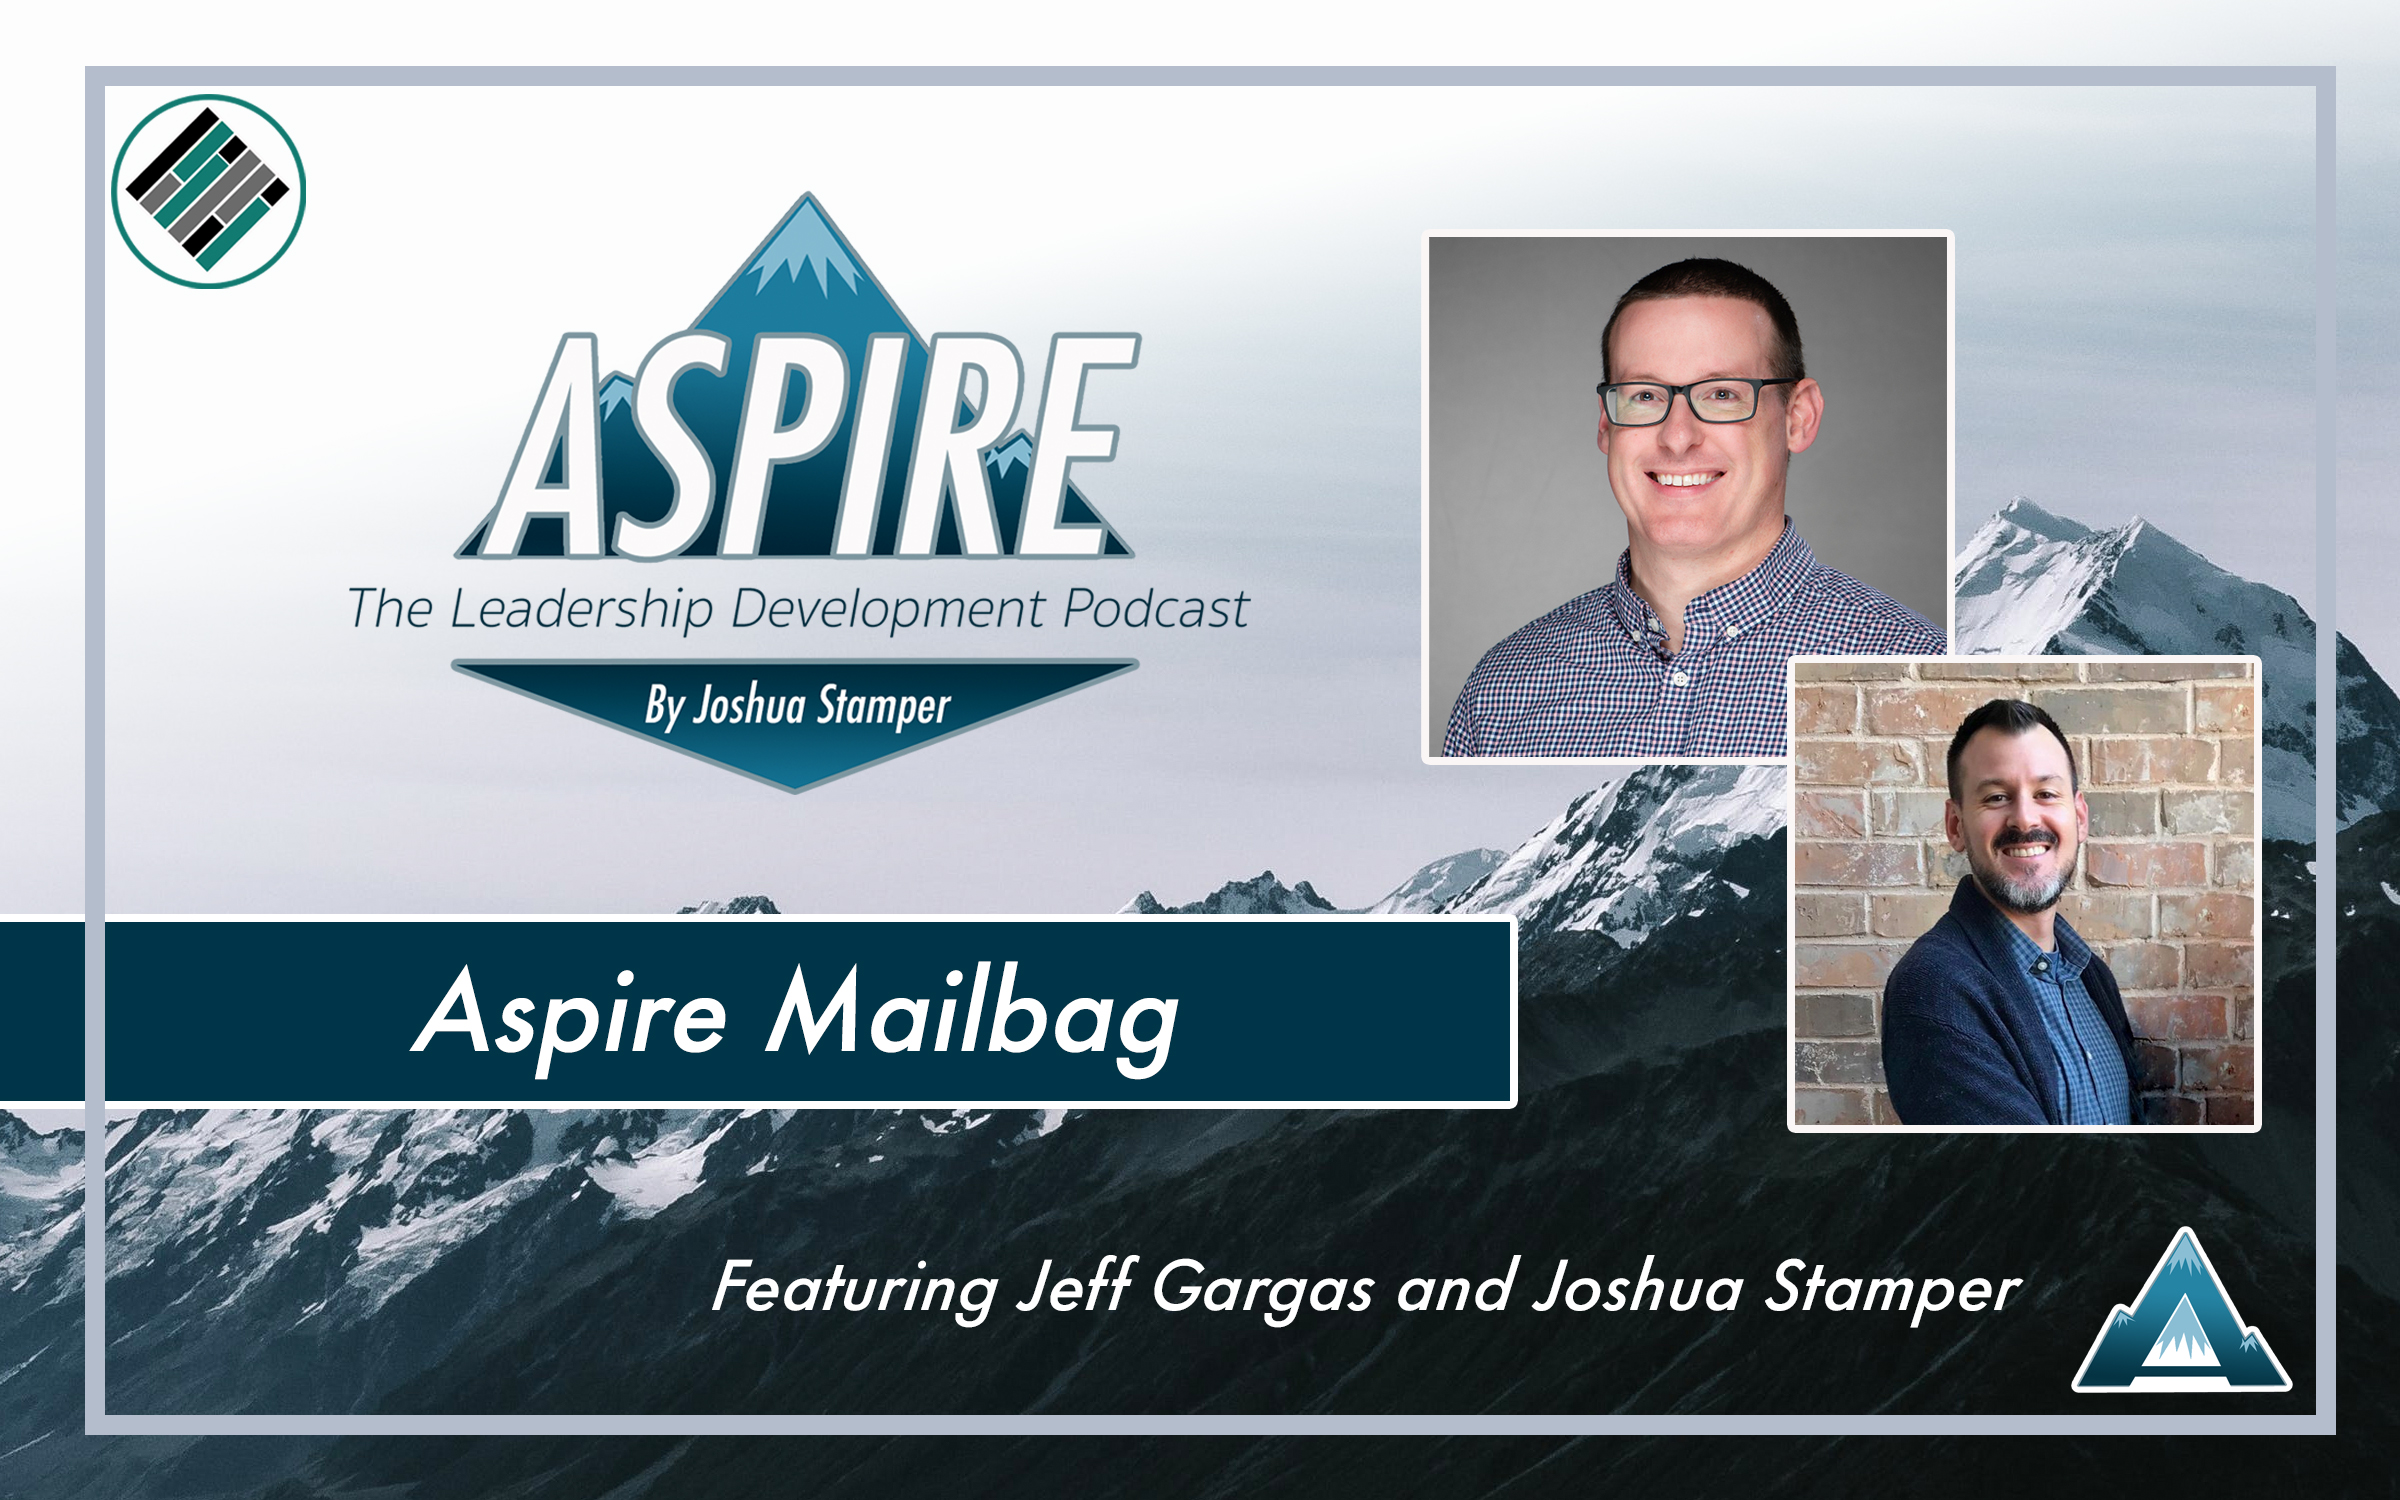 Jeff Gargas, Joshua Stamper, Aspire Mailbag, Teach Better